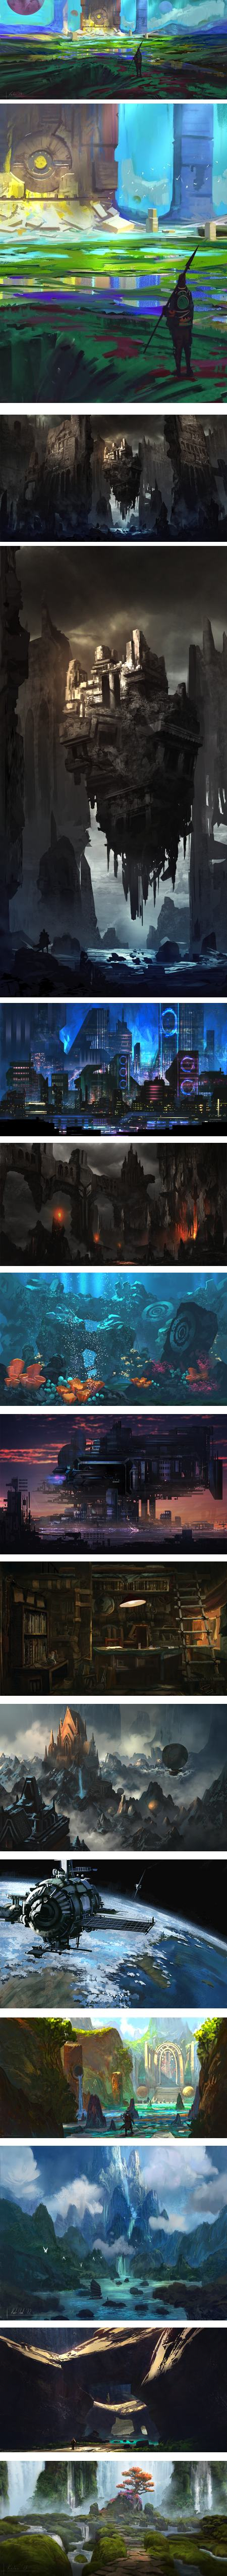 Kalen Chock, concept environments and visual development art